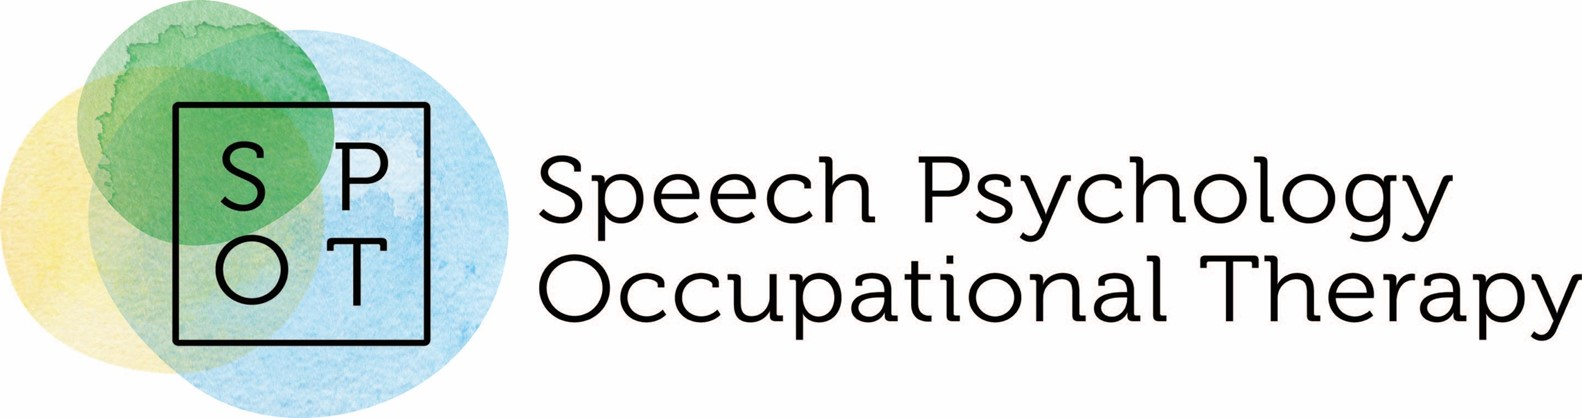 Speech Psychology Occupational Therapy